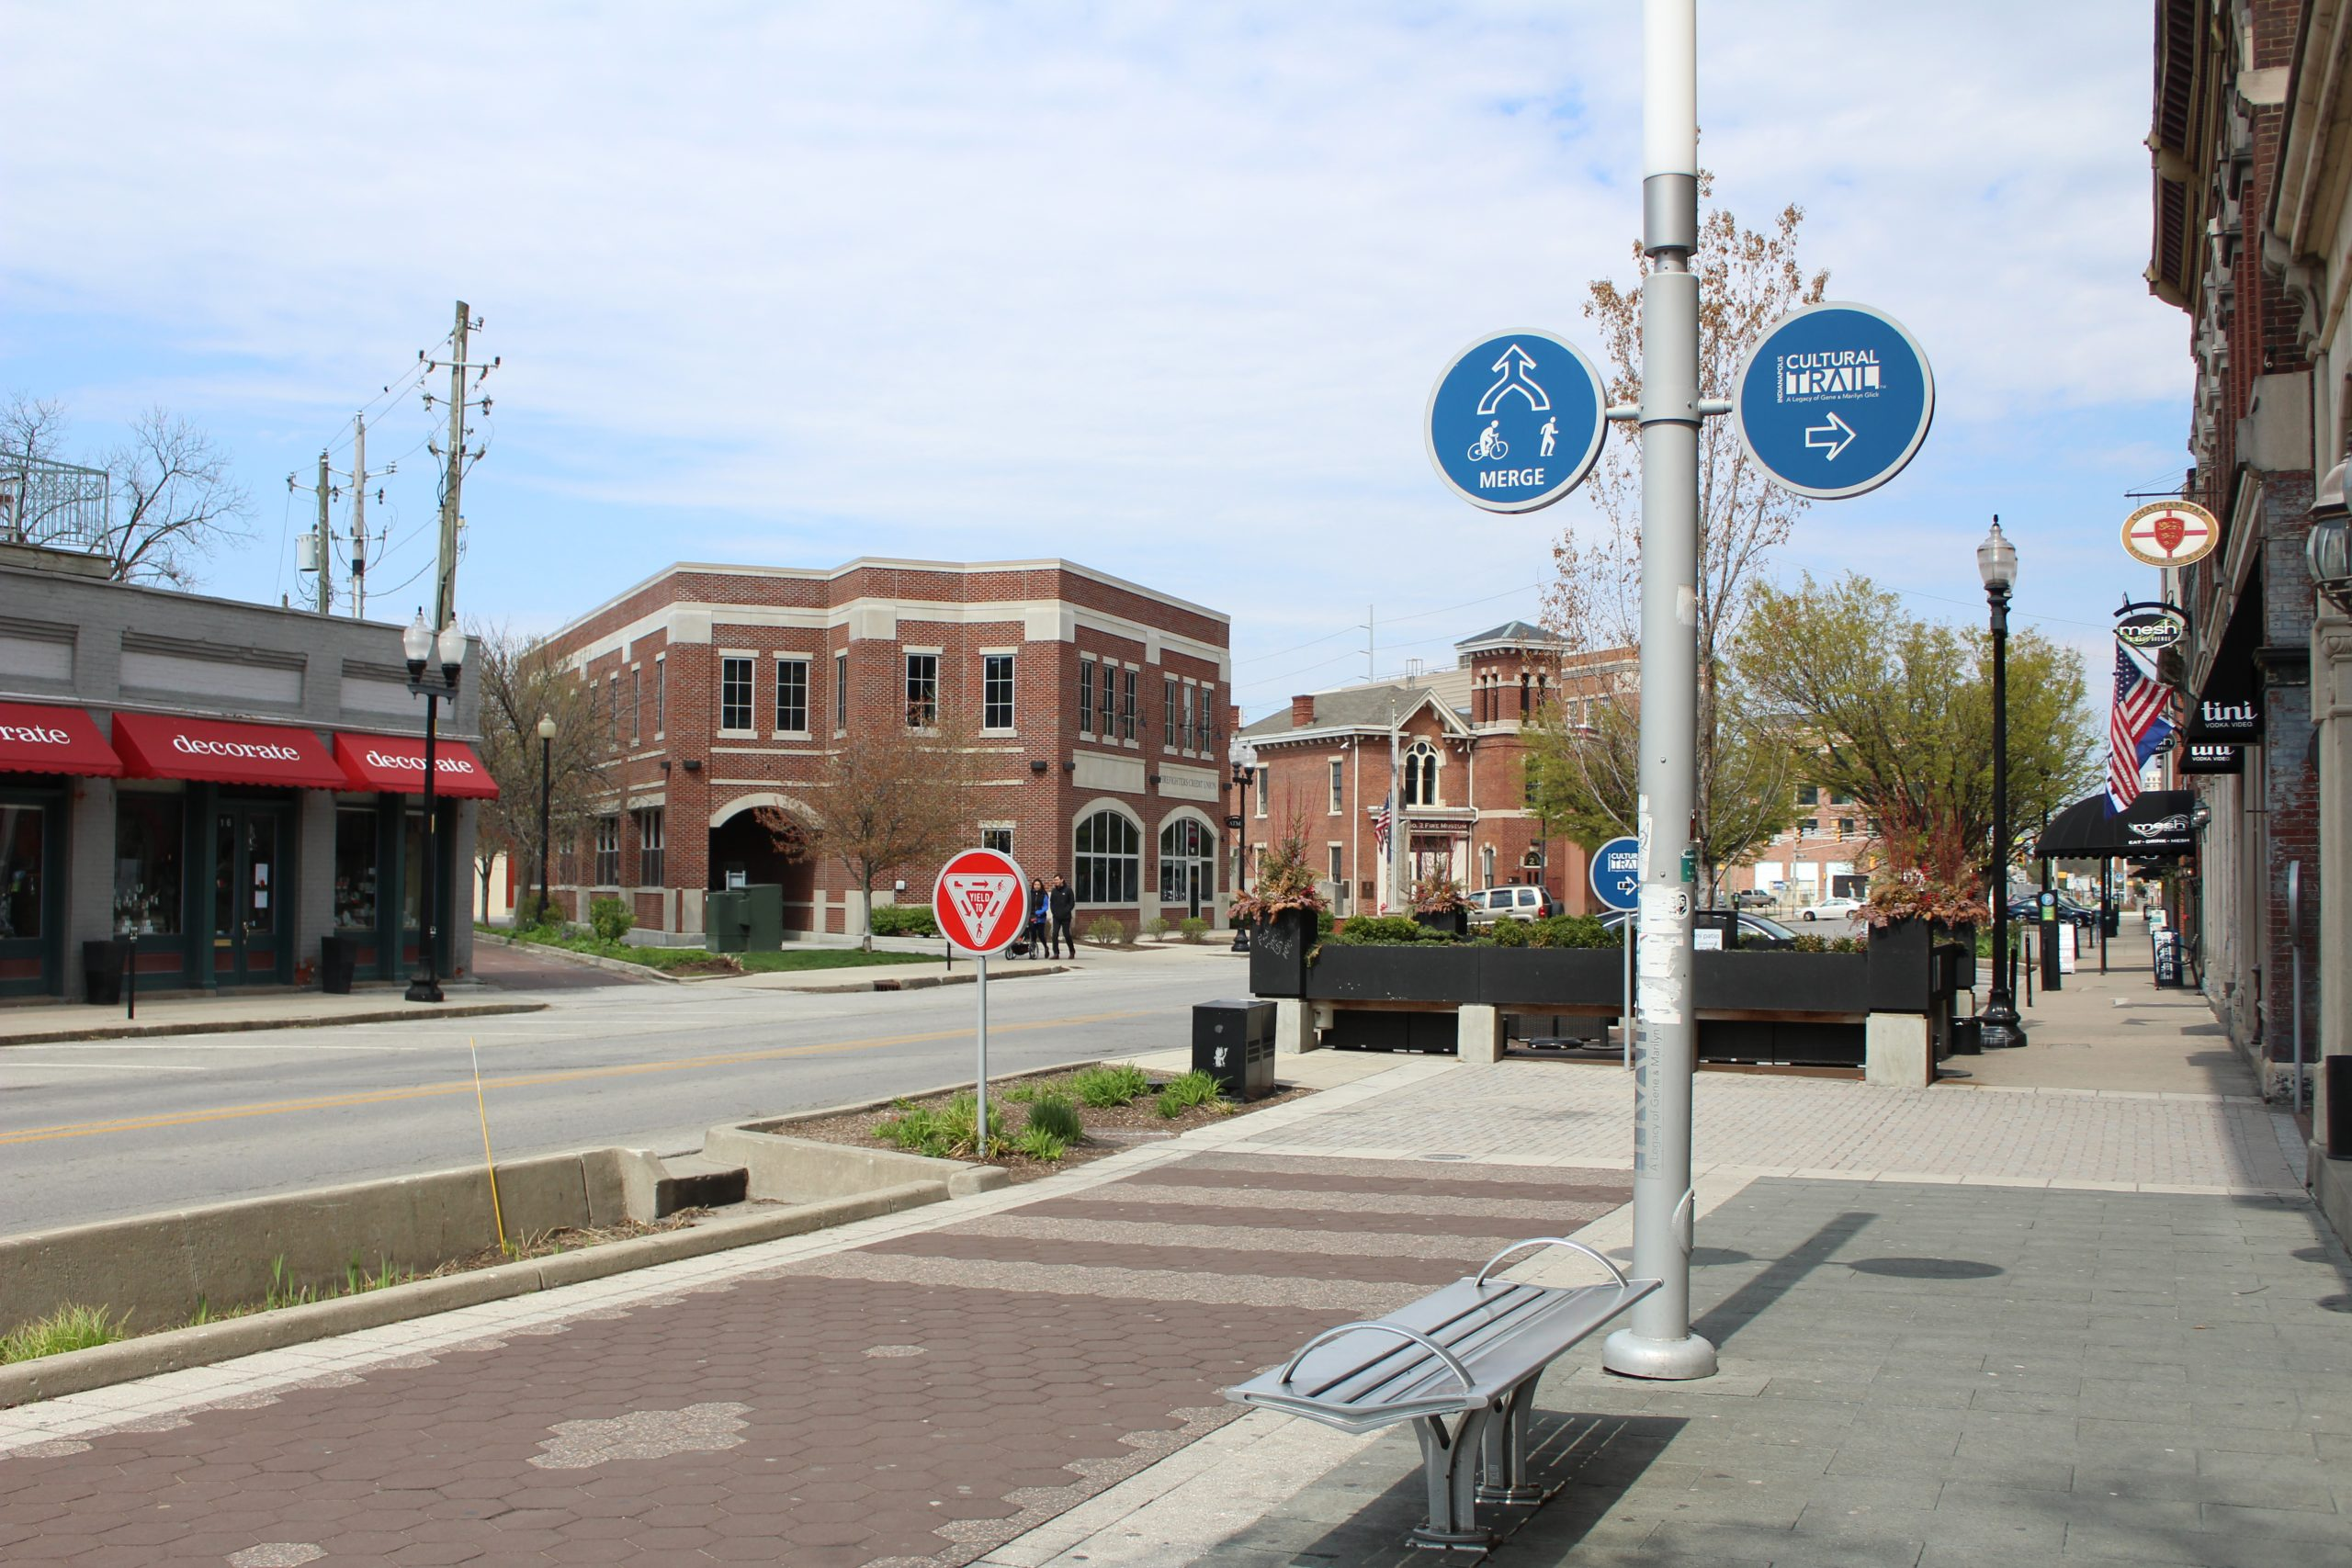 Mass Ave - Chatham Arch Cultural Trail